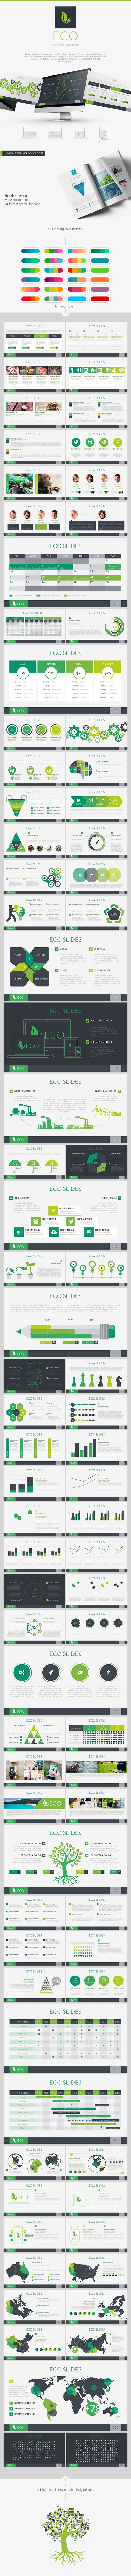 "Download: http://site2max.pro/eco-powerpoint-template/ ""ECO"" PowerPoint template #pptx #powerpoint #template #slide #marketing #energy #eco #nature #business"